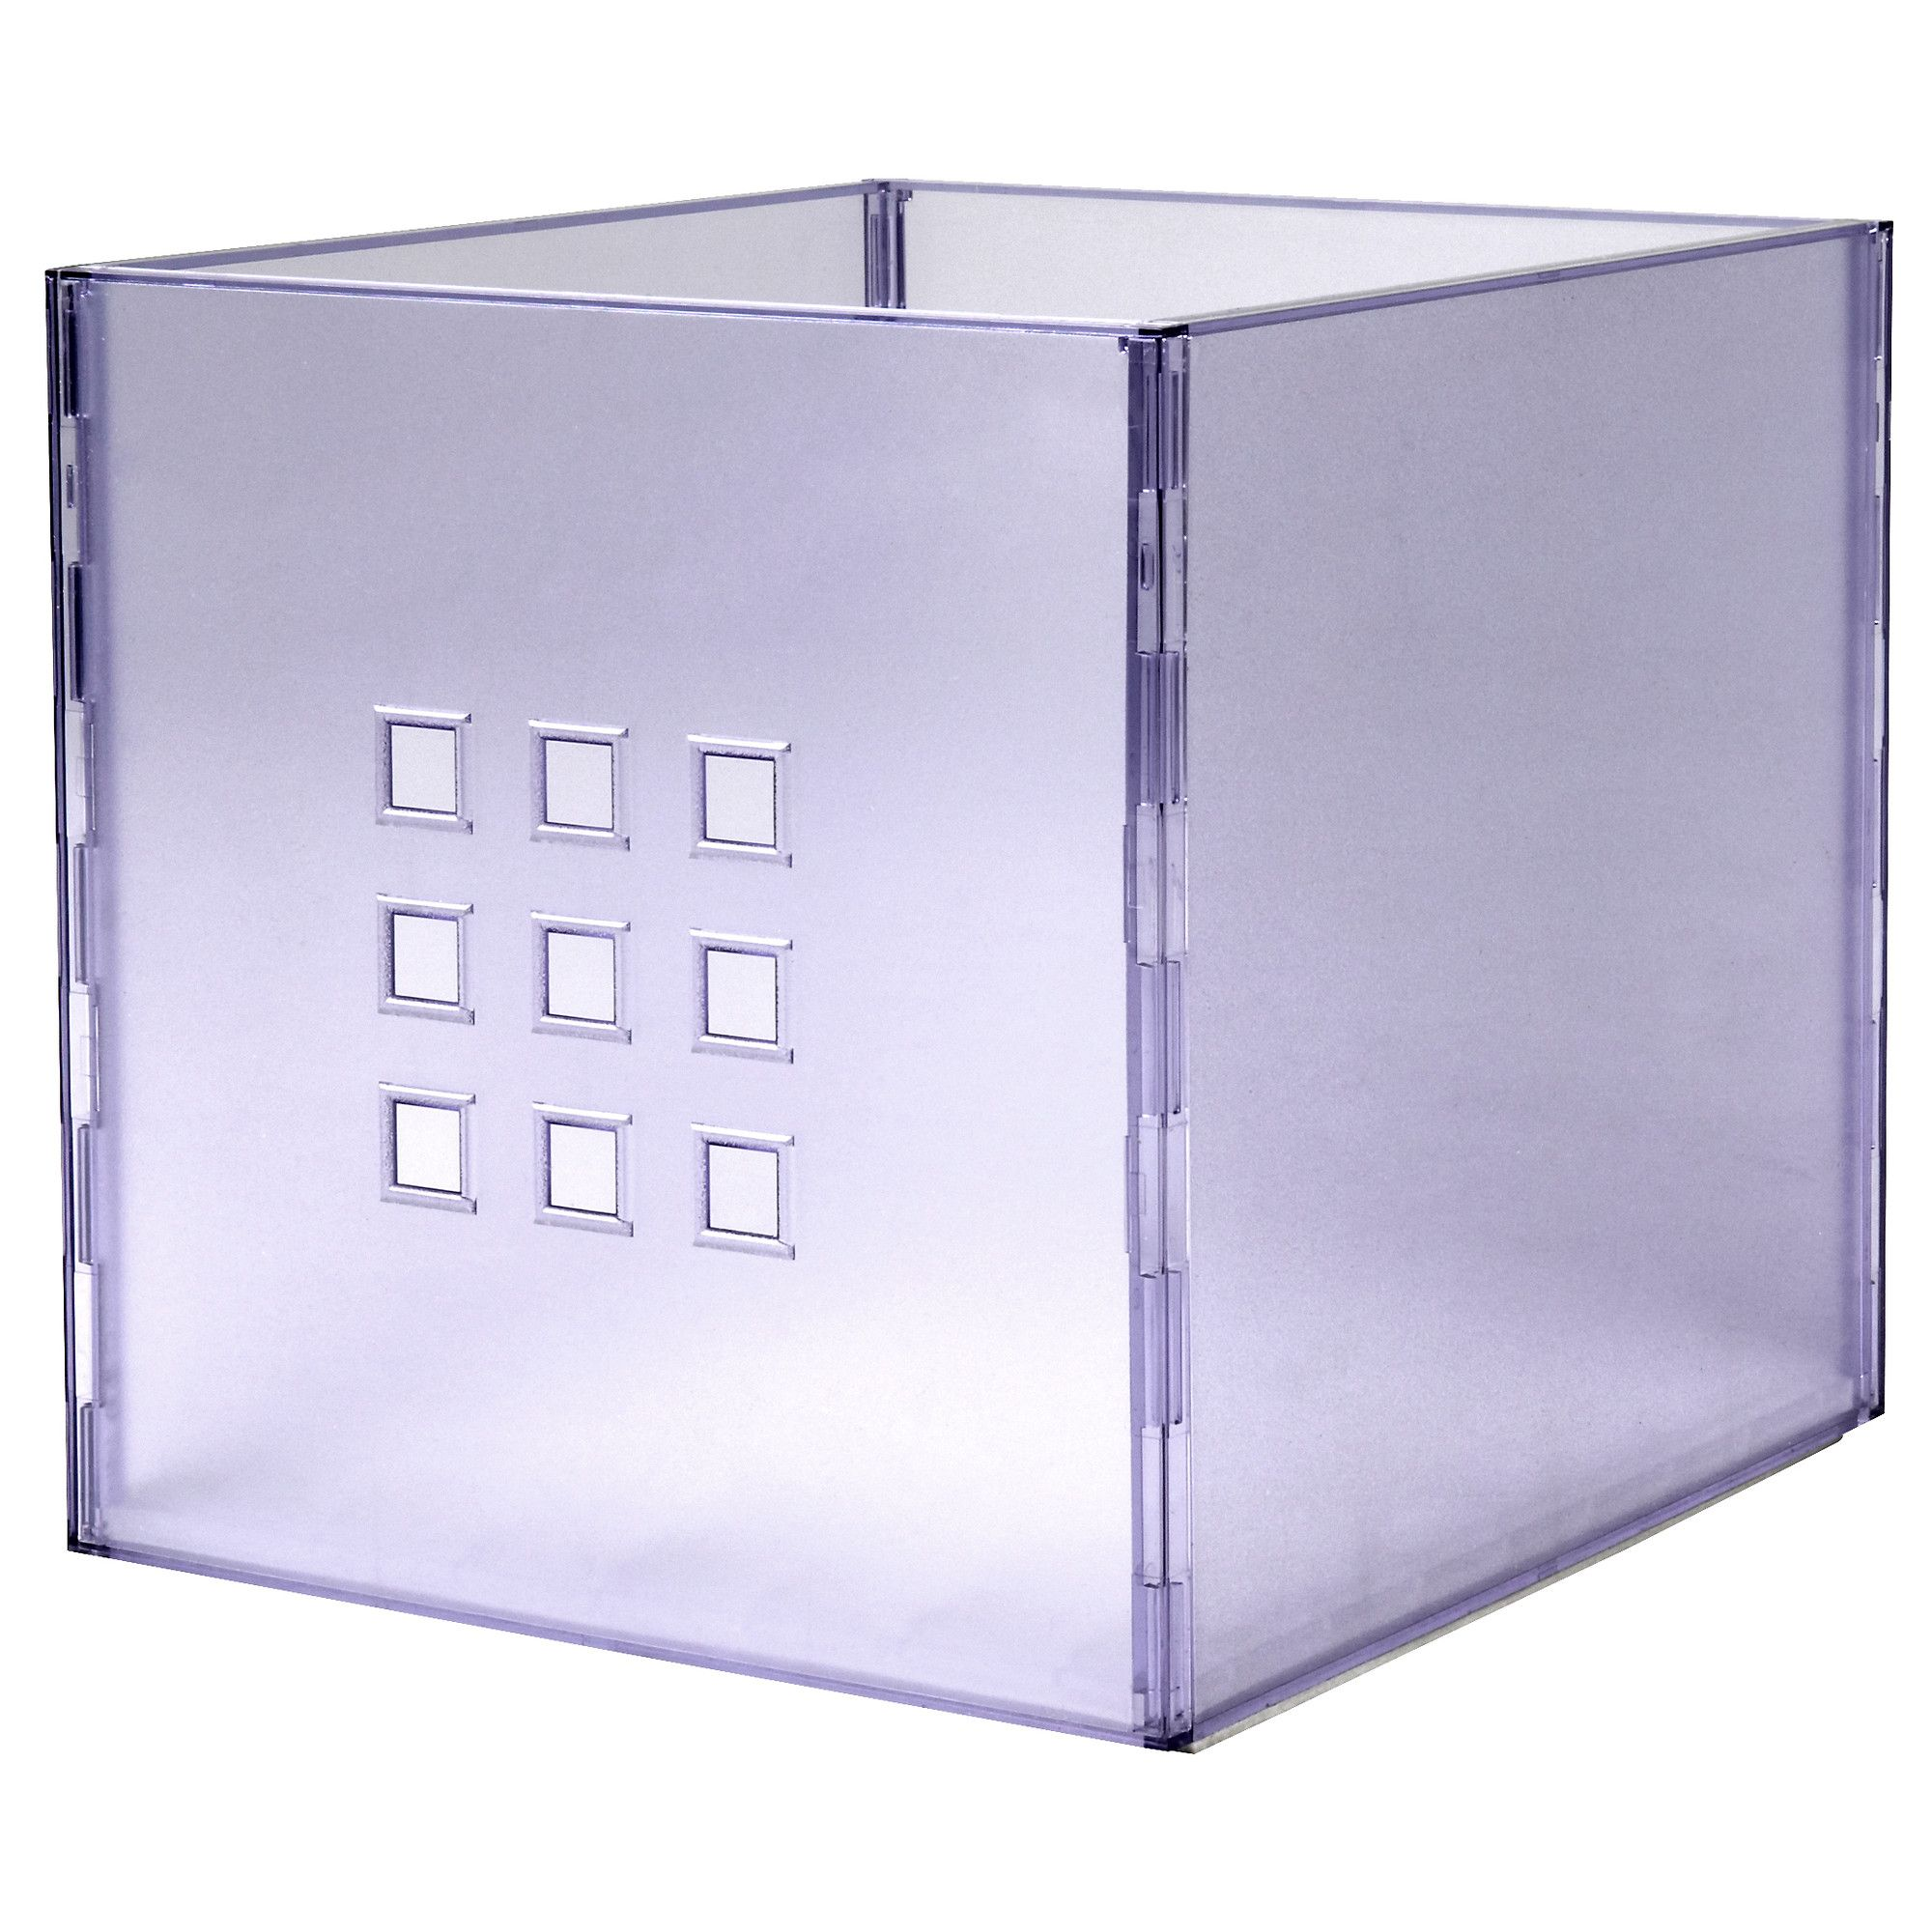 Awesome LEKMAN Box   Clear   IKEA $13   Get A Few For The Bedroom Shelving